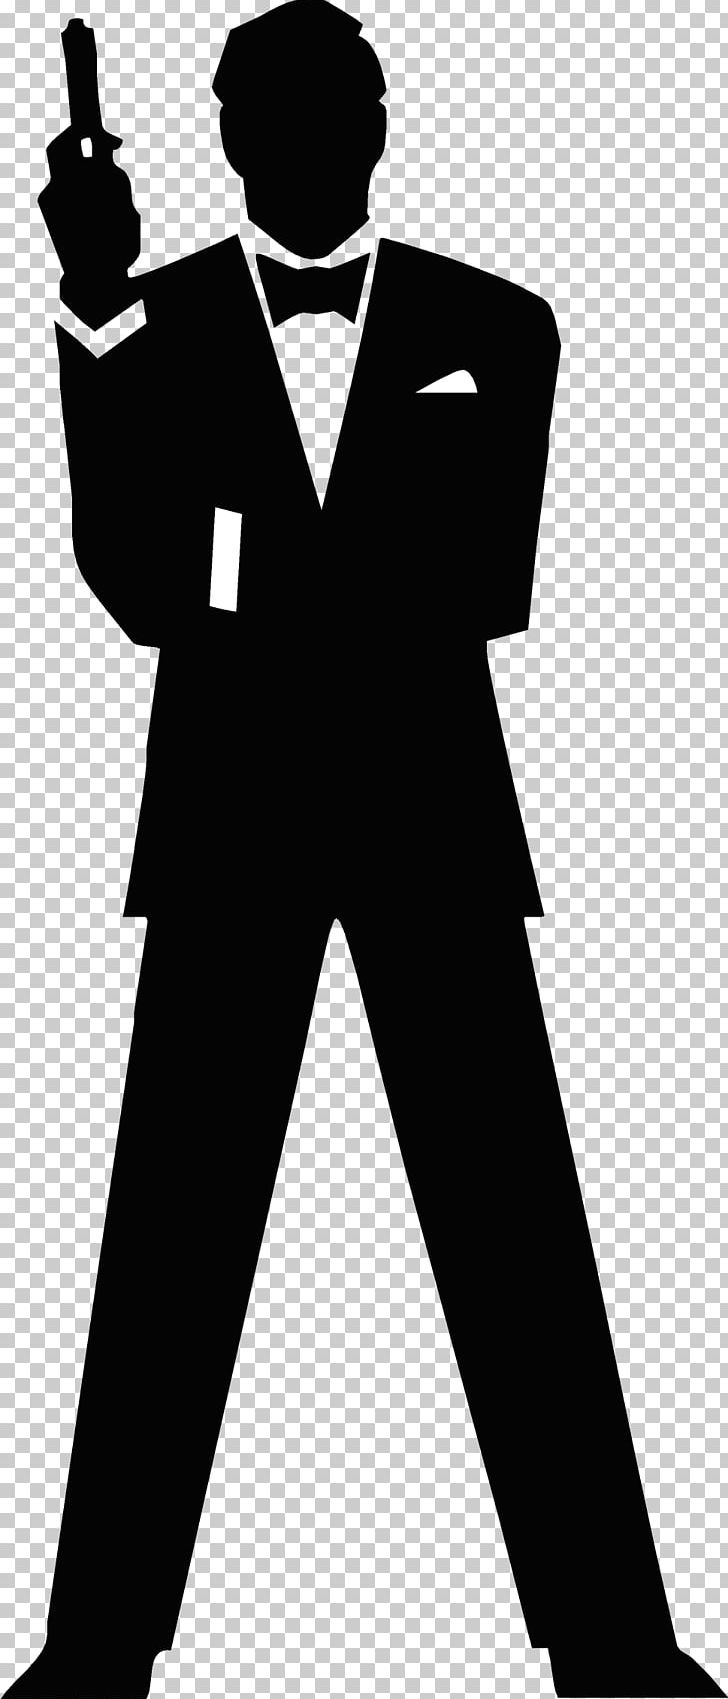 James bond silhouette photography png clipart black and white encapsulated postscript formal wear gentleman graphic arts